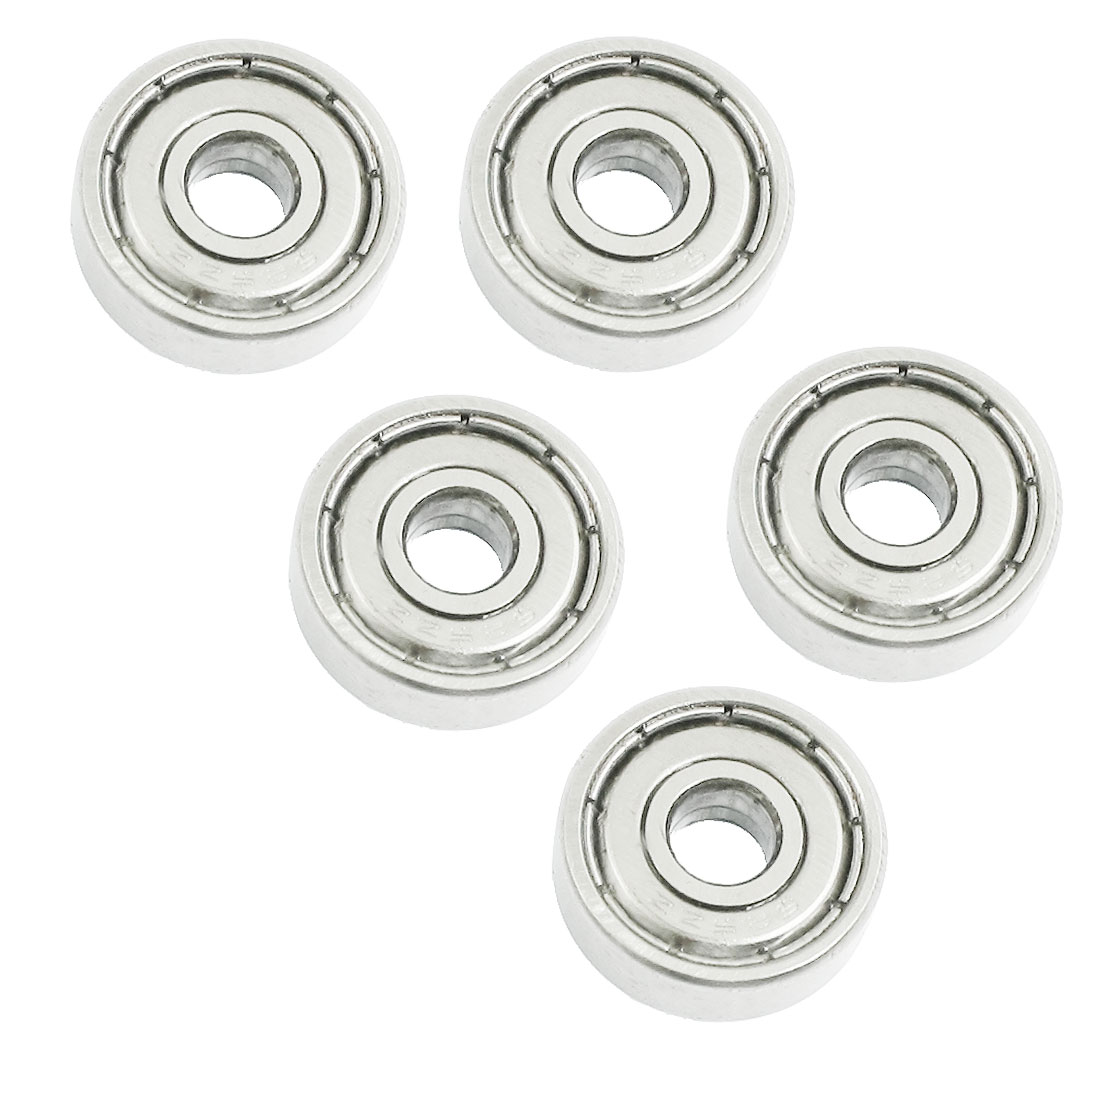 5 Pcs Skateboard Deep Groove Radial Ball Bearings 625ZZ 16x5x5mm